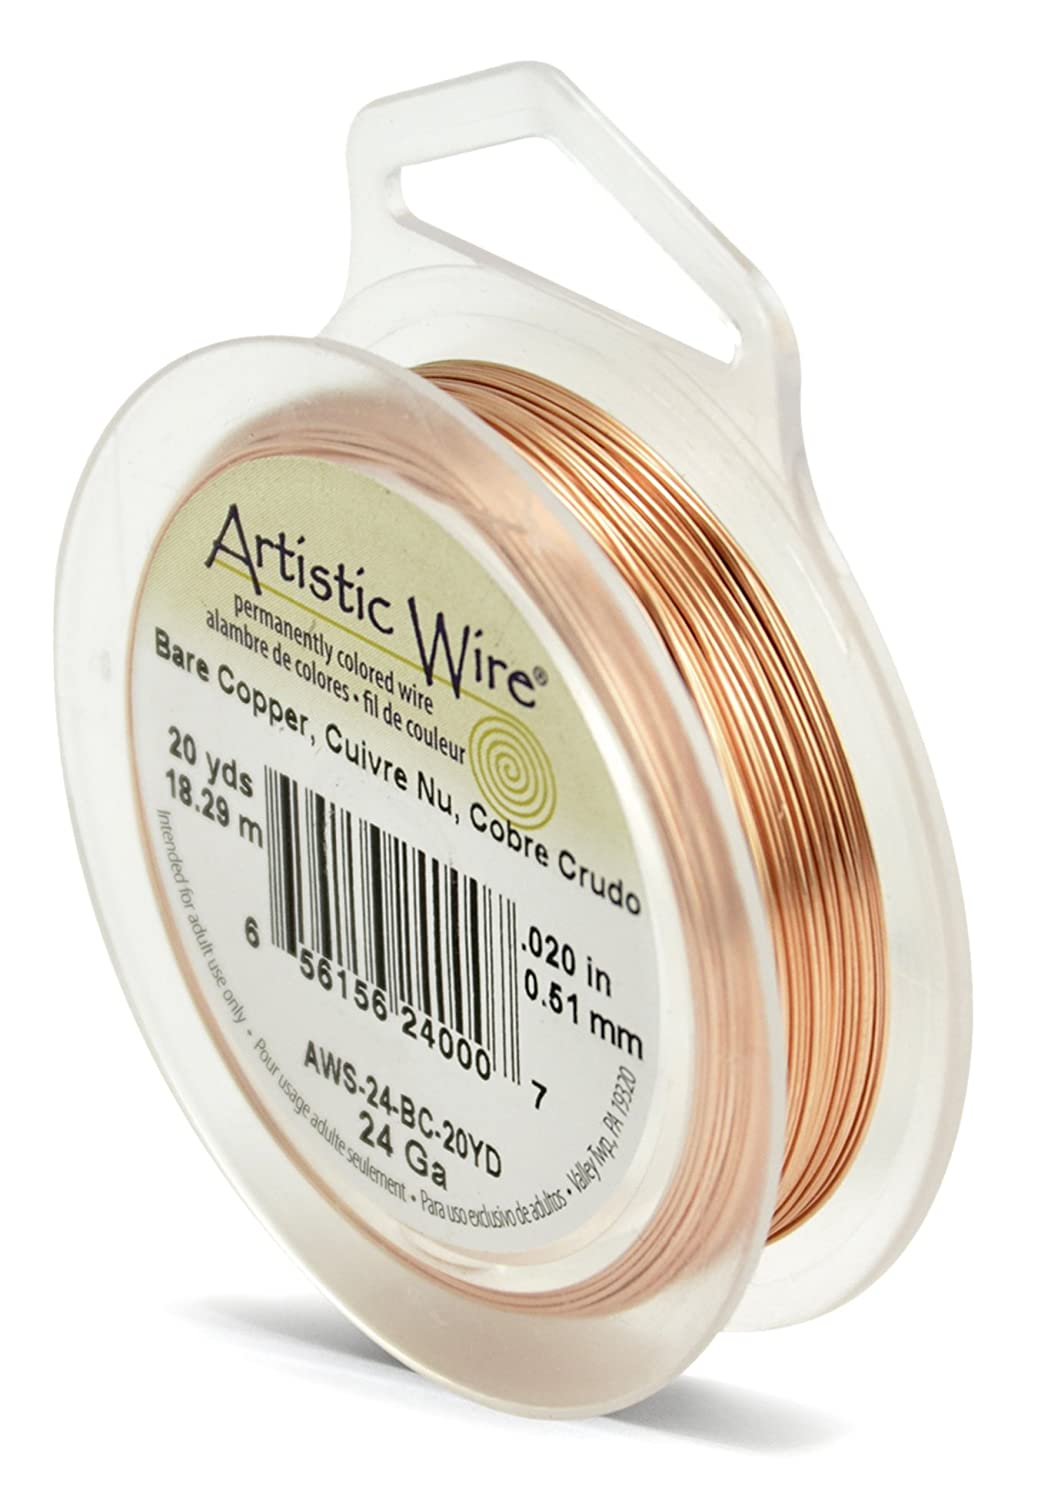 Beadalon Artistic Wire 24-Gauge Bare Copper Wire, 20-Yards AWS-24-BC-20YD